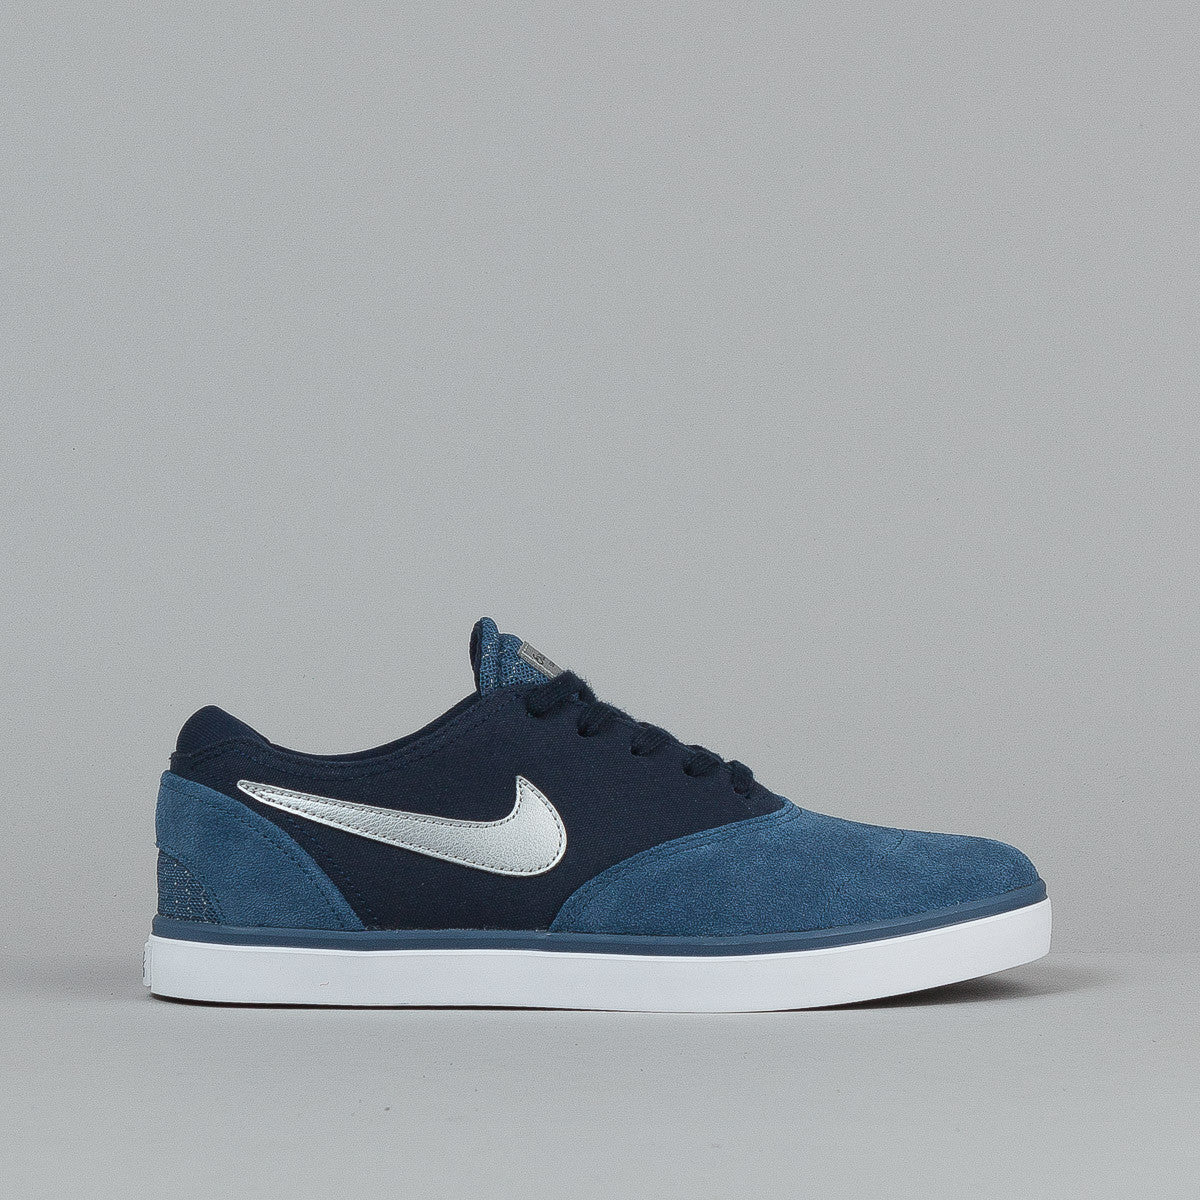 Nike Sb Eric Koston 2 LR New Slate / Metallic Silver